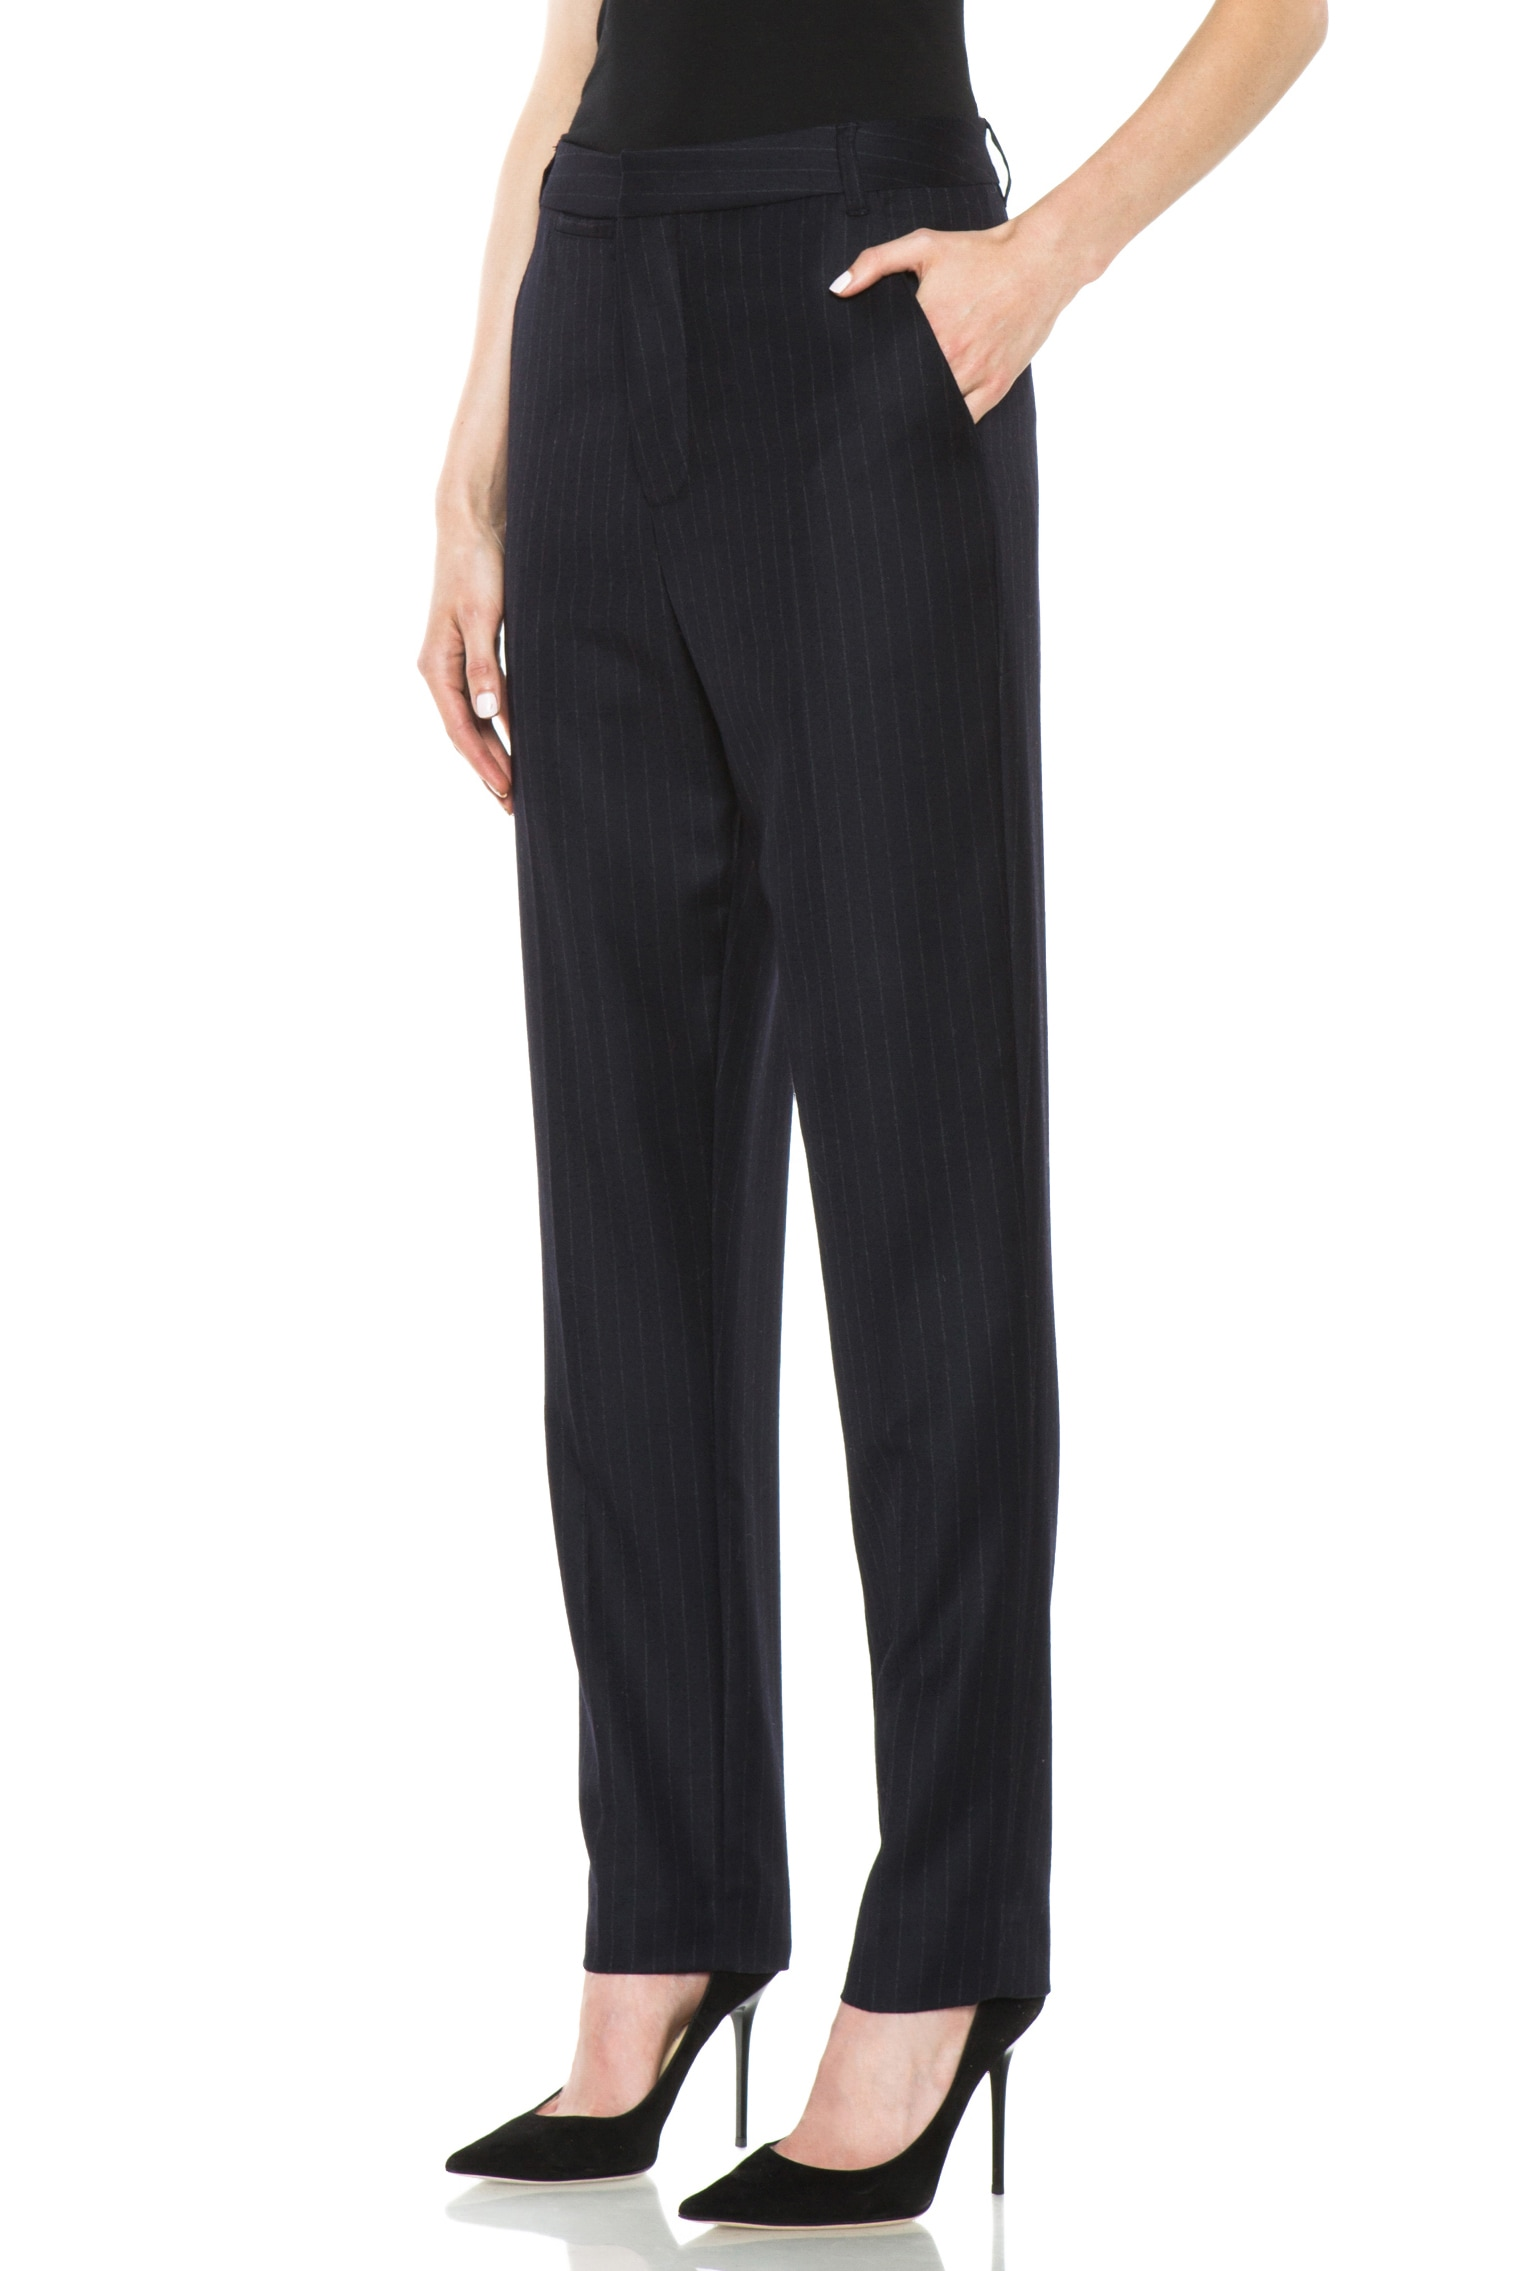 Image 2 of BLK DNM Dropped Crotch Flat Front Wool Pant in Navy Blue Pinstripe